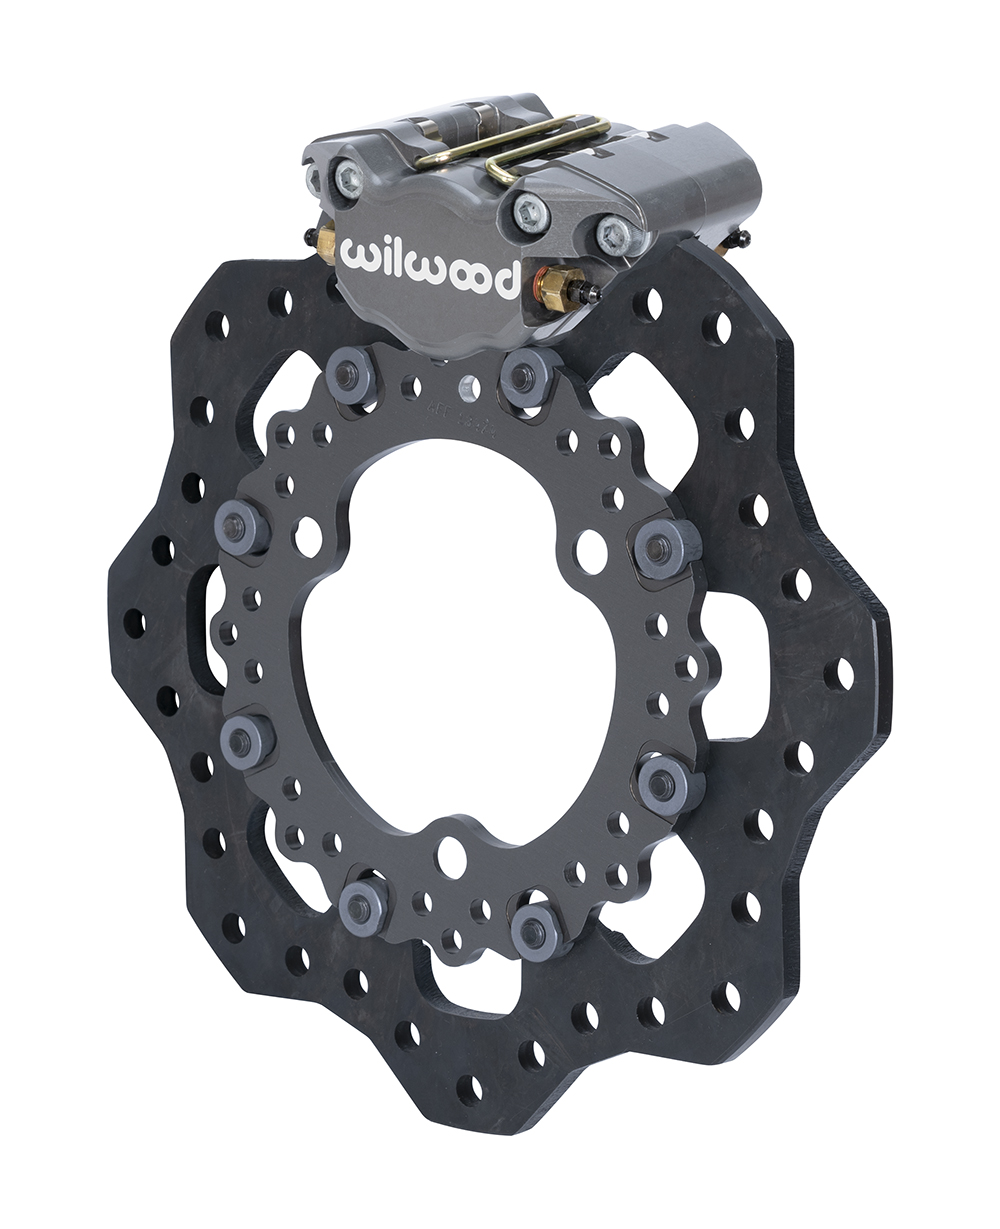 Wilwood Dynapro Single Front Dirt Modified Brake Kit - Type III Ano Caliper - Drilled Rotor